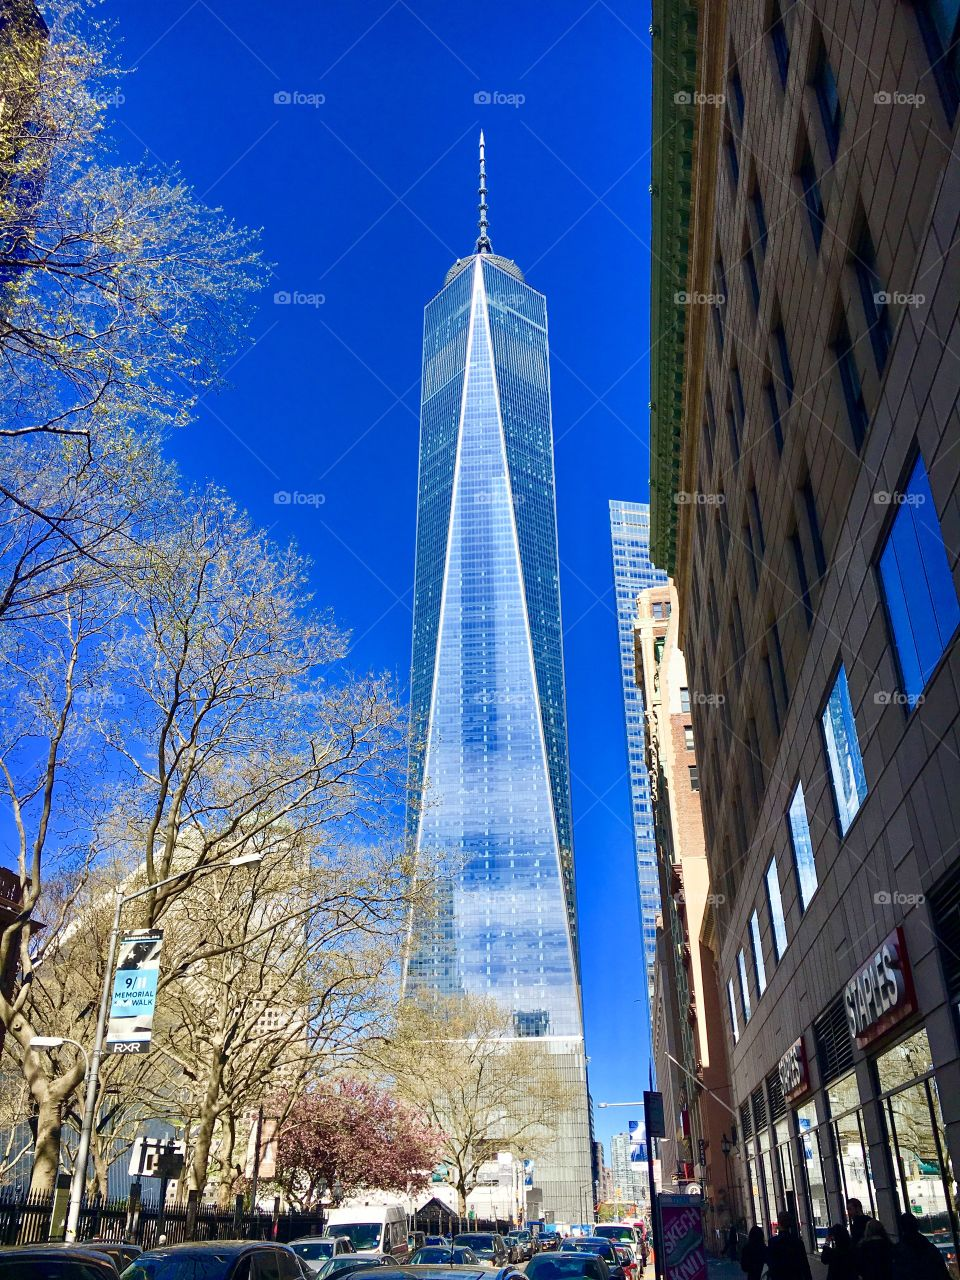 World Trade Centre from a distance